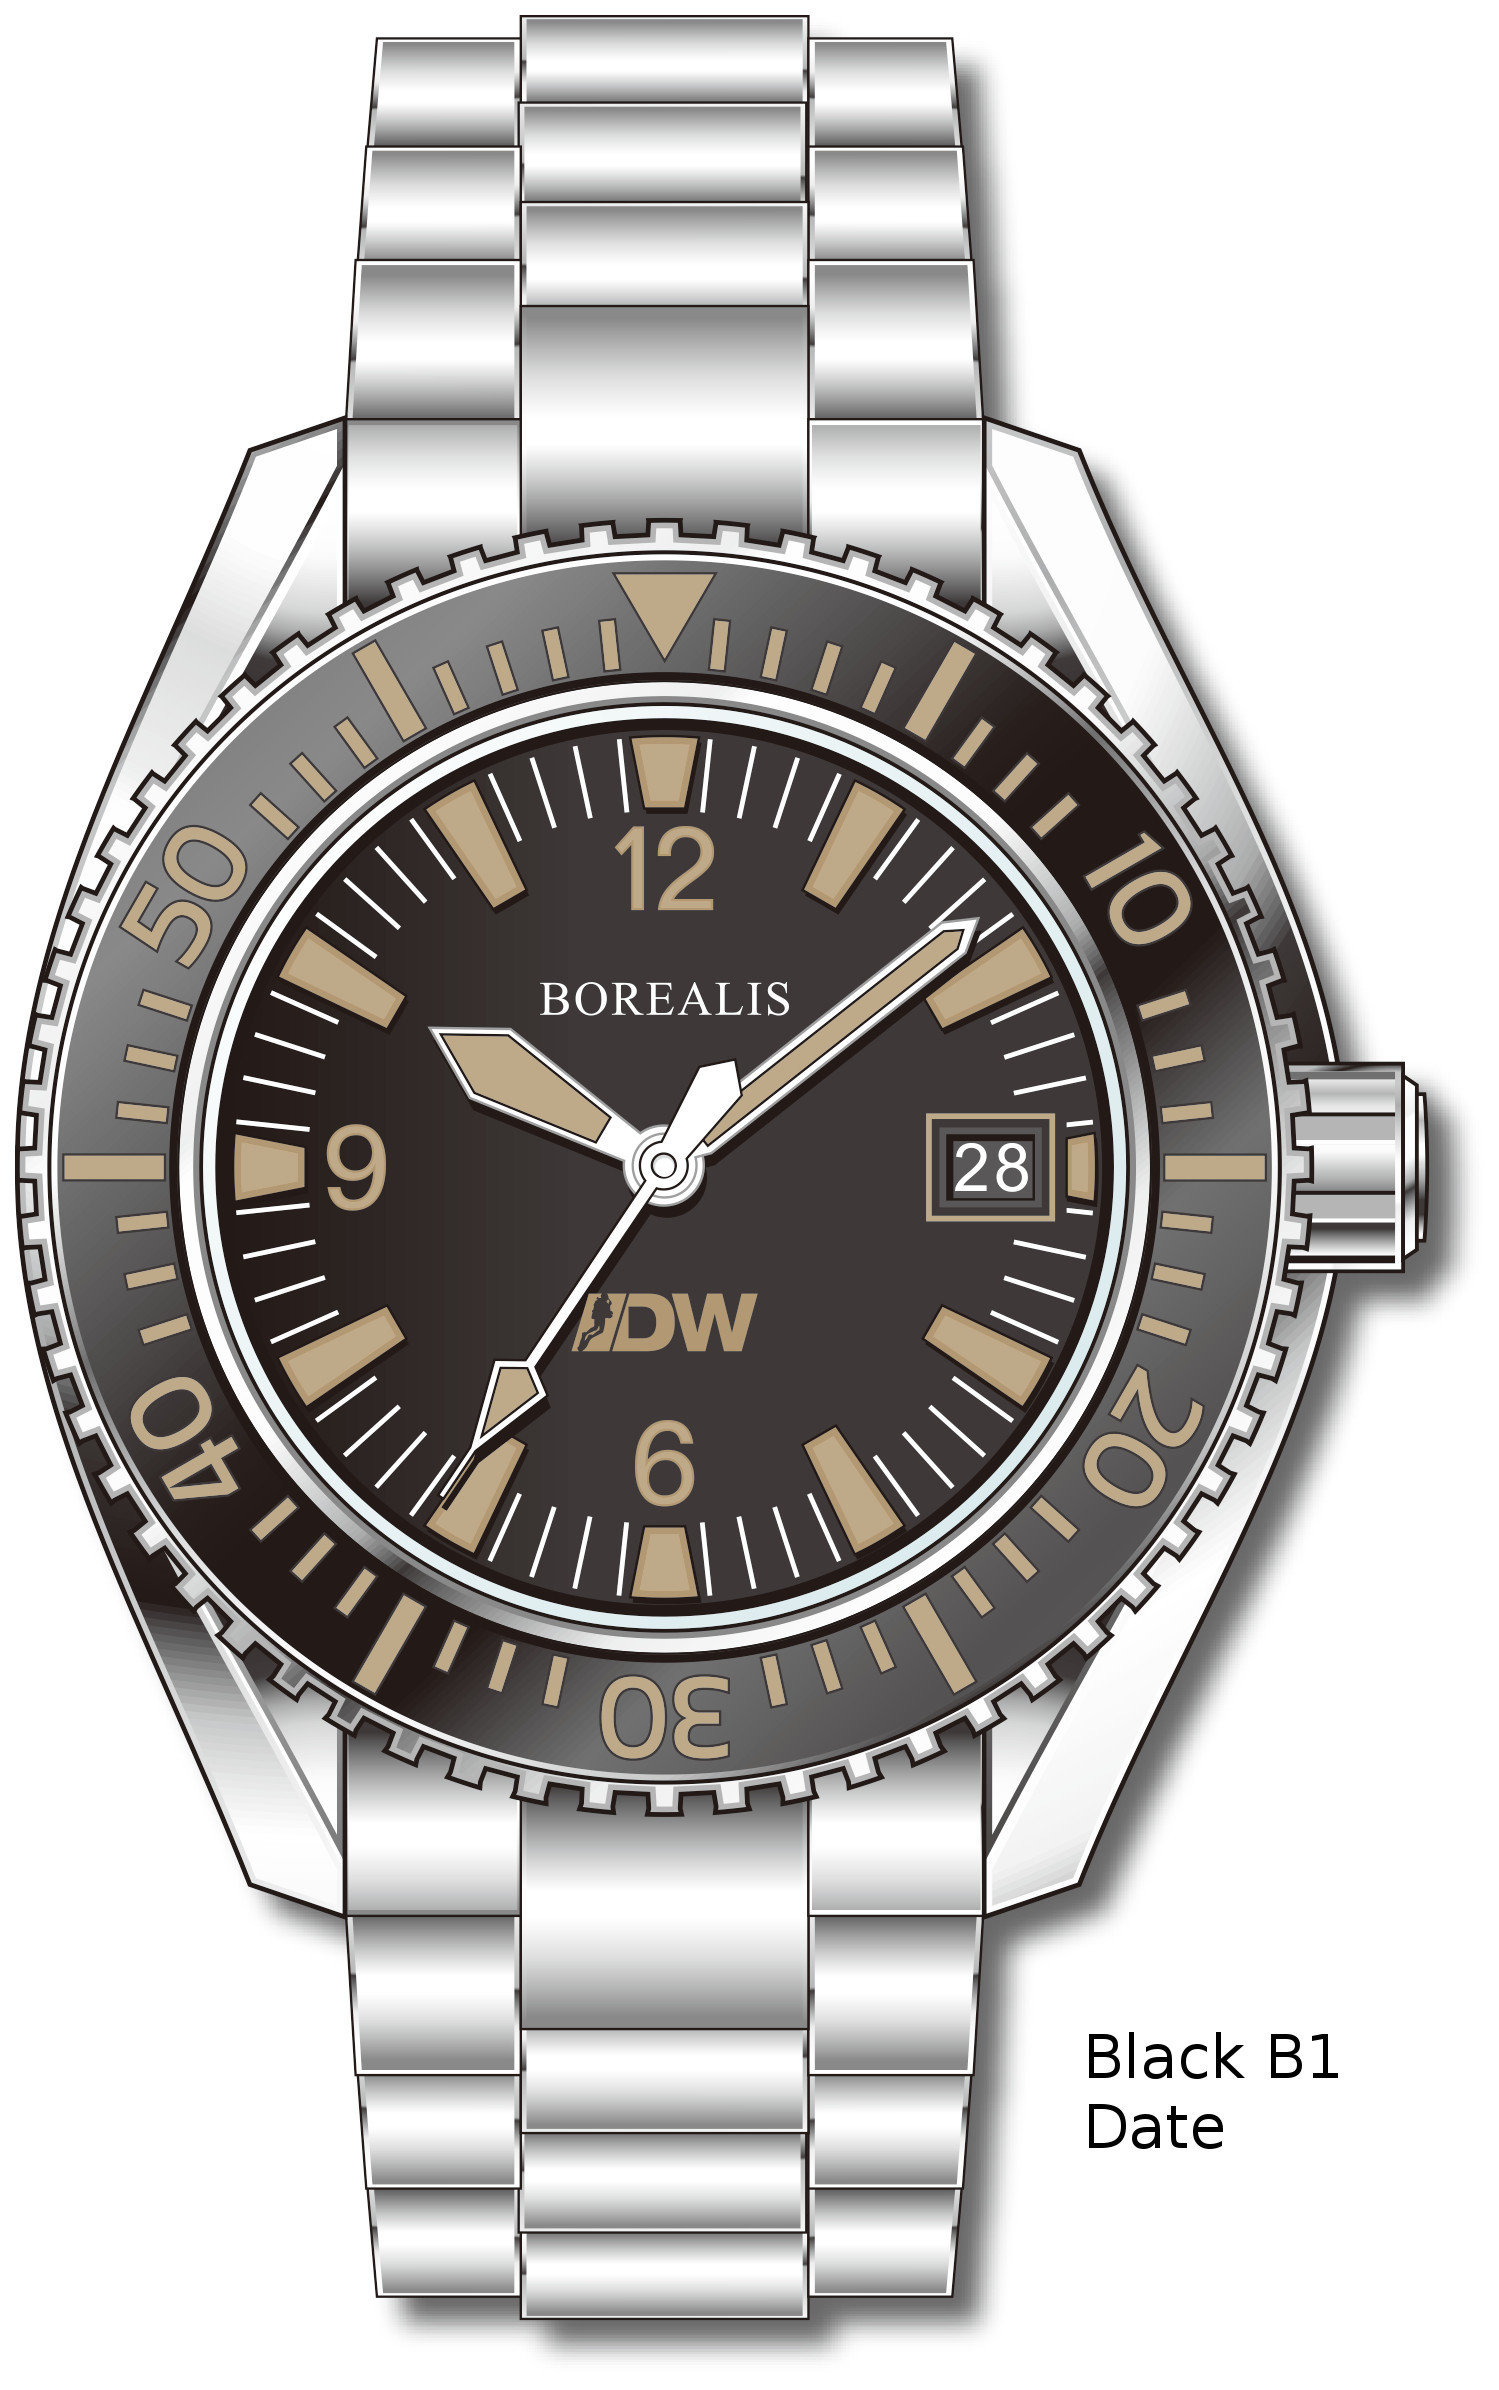 Pre-Order Borealis Estoril 300 for Diver's Watches Facebook Group Black Dial Arabic Numbers Date Black B1 Date EDWFBGBLACKB1DT